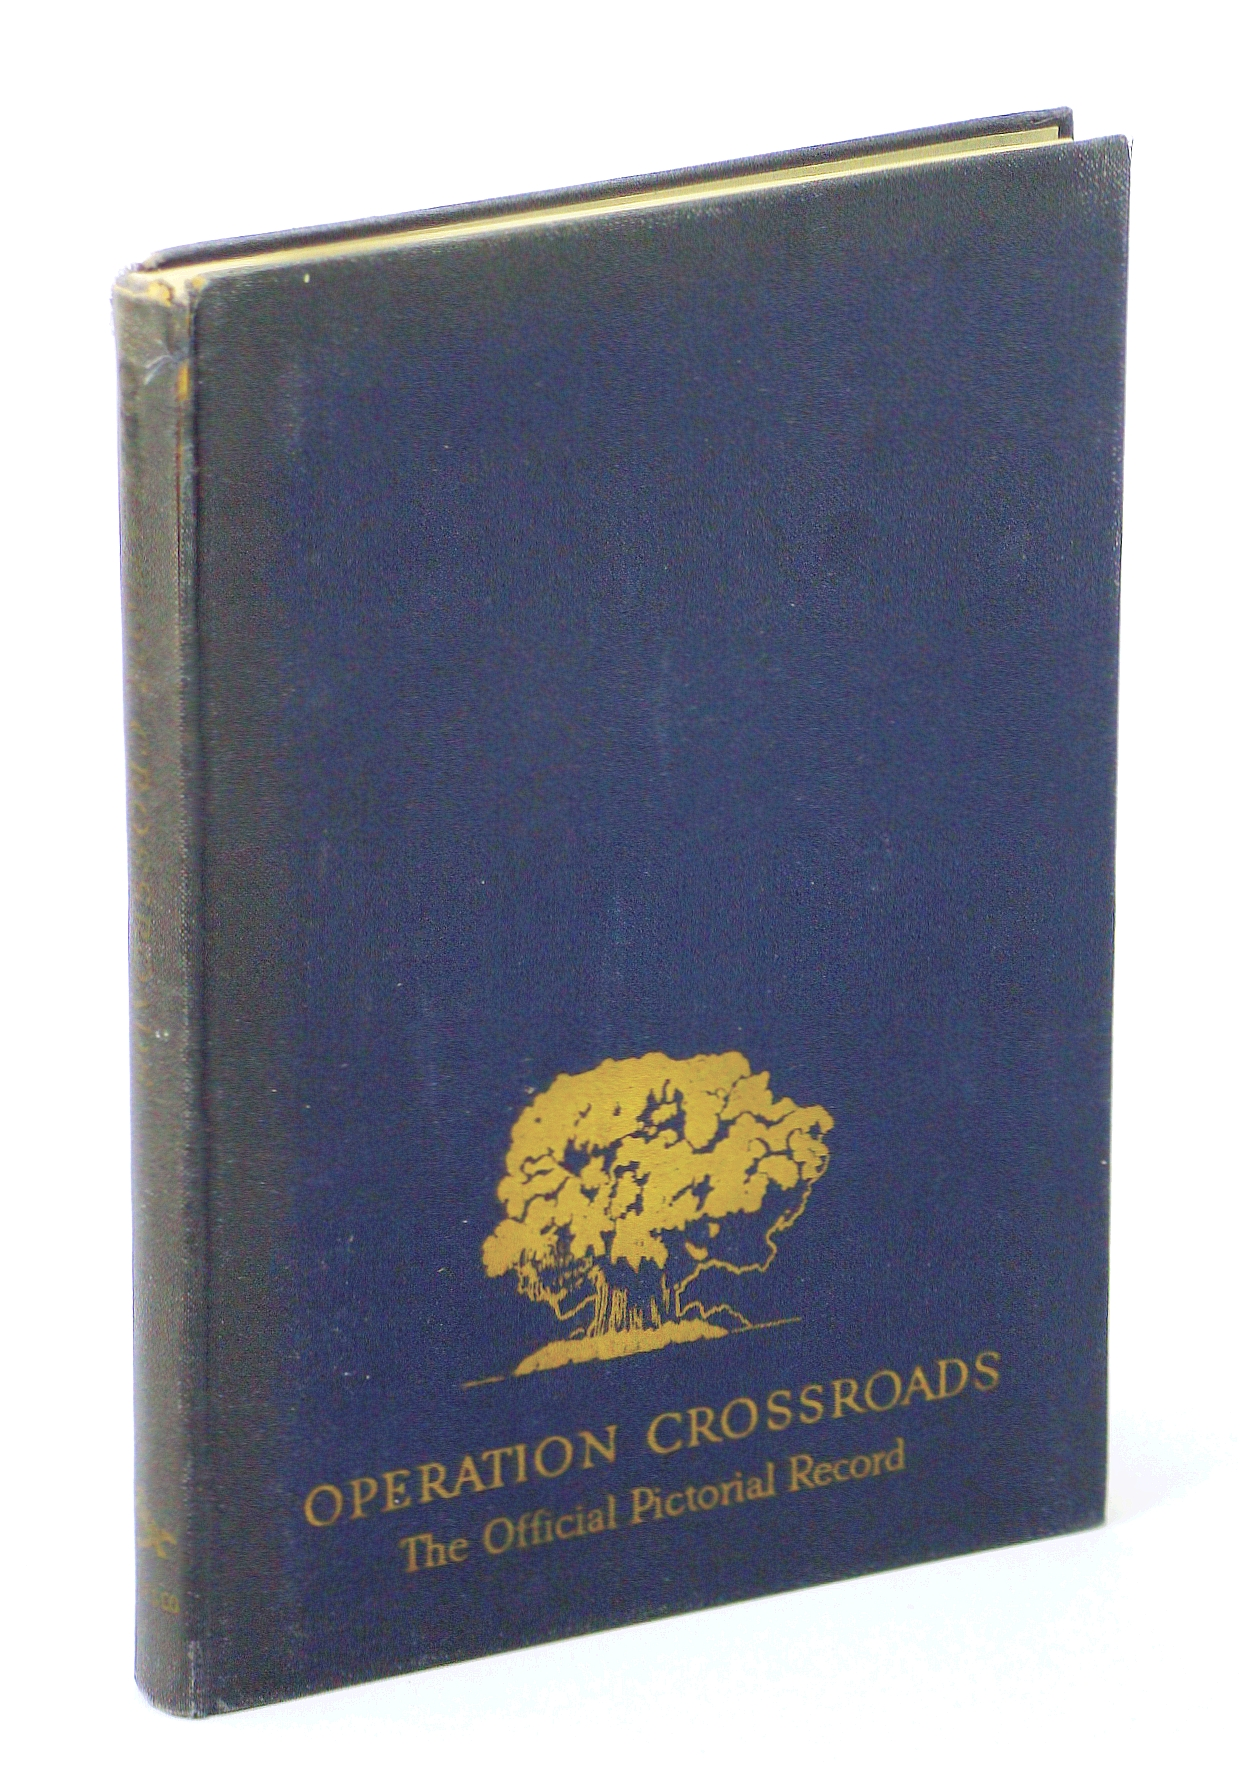 Image for OPERATIONS CROSSROAD. The Official Pictorial Record. by (no author) (1946-05-03)